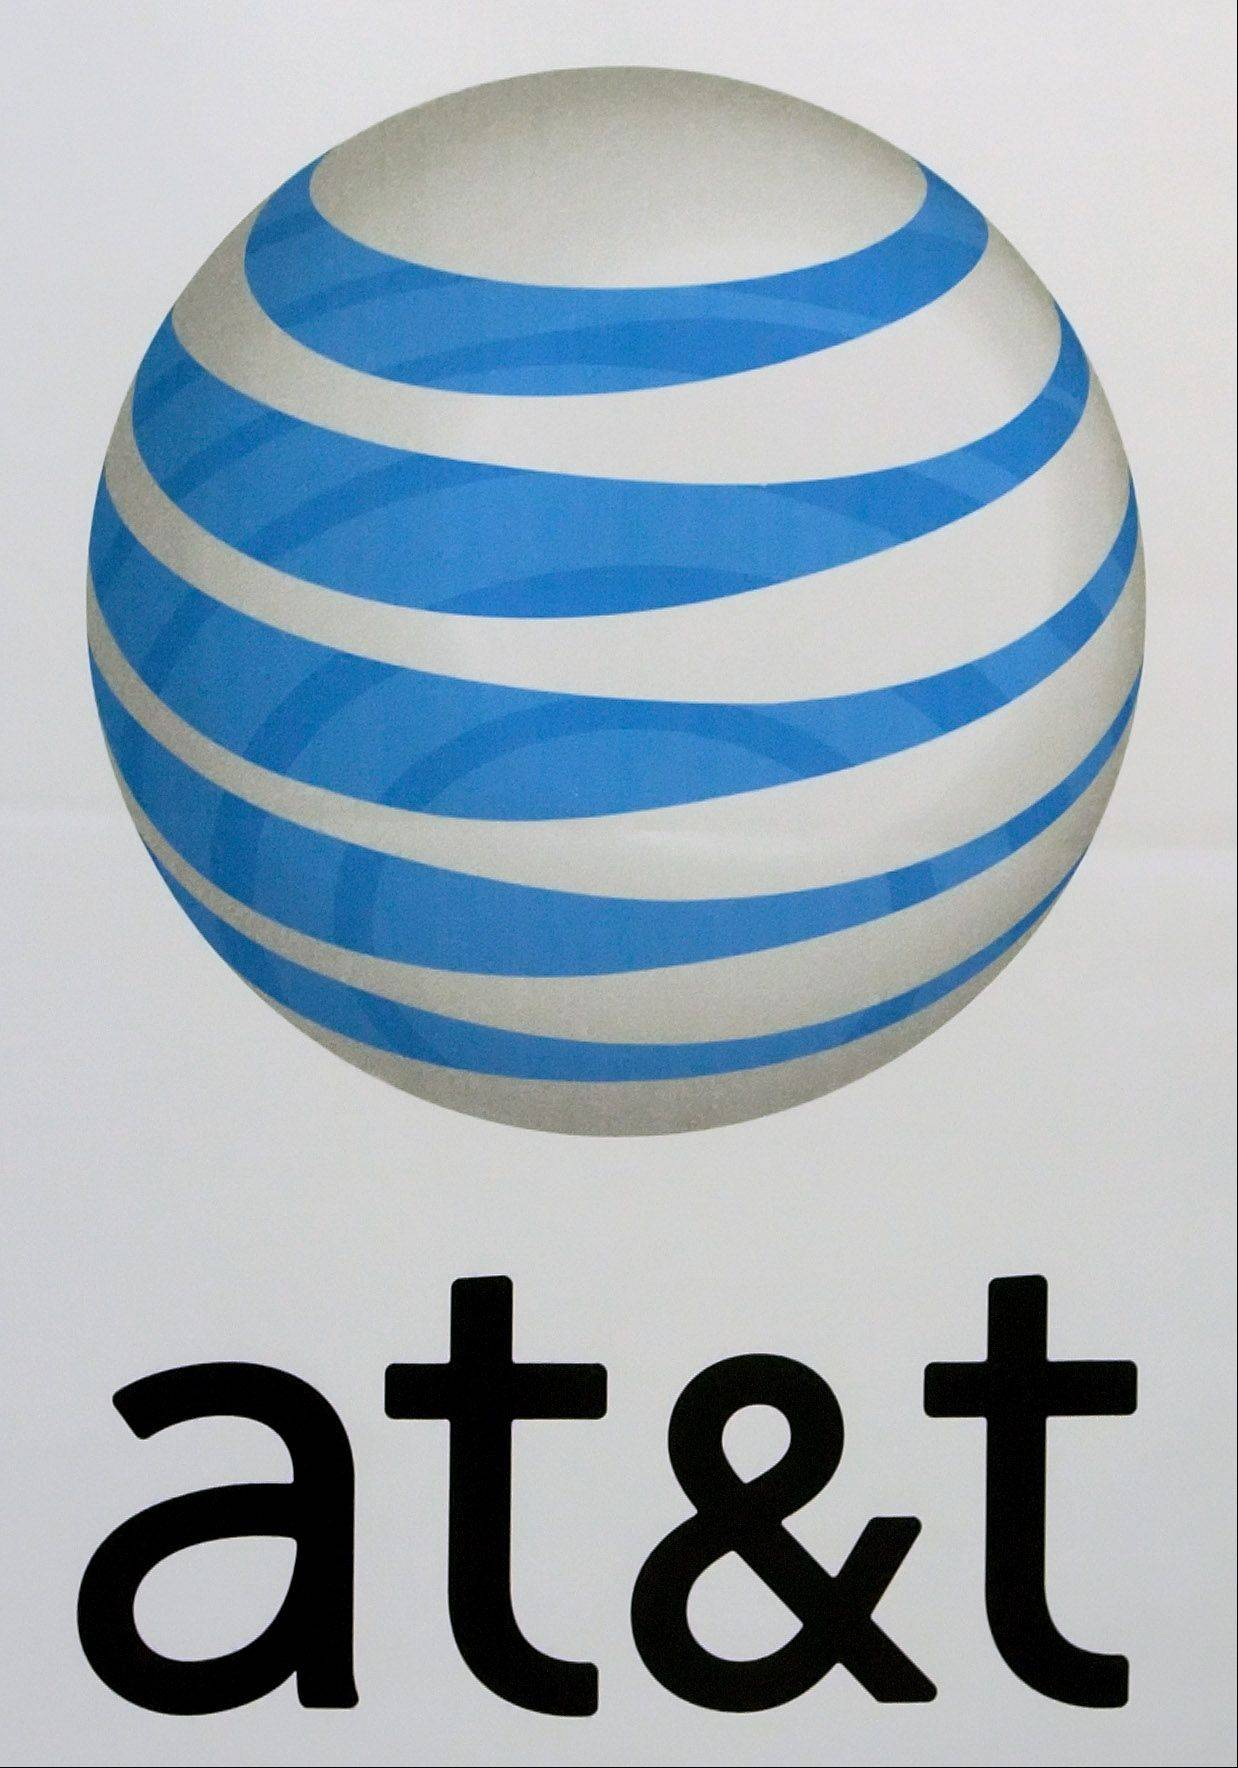 AT&T is adding a walkie-talkie-like application to the iPhone for its corporate customers, replicating a hallmark feature of the Nextel network, which is being shut down this summer.